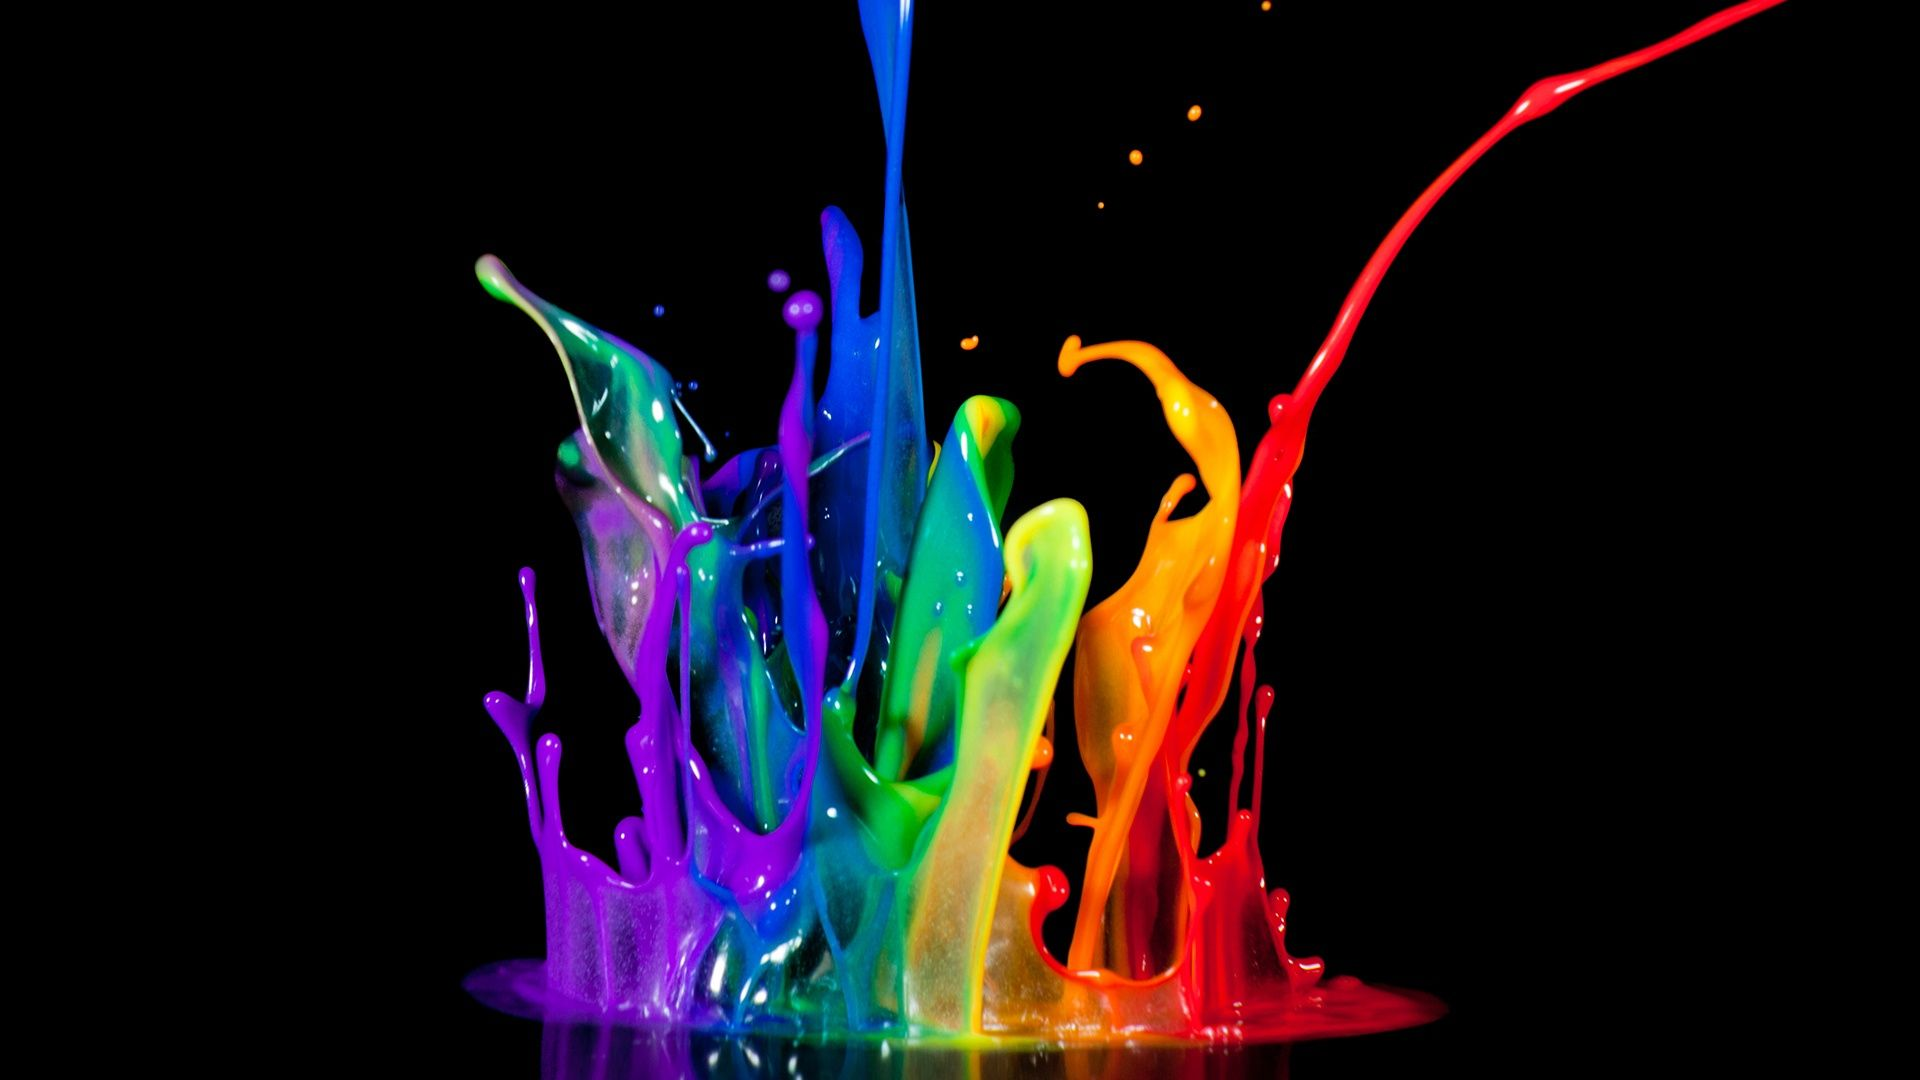 Colorful Hd Wallpaper 1920x1080 Id 23254 Colorful Wallpaper Painting Wallpaper Rainbow Painting